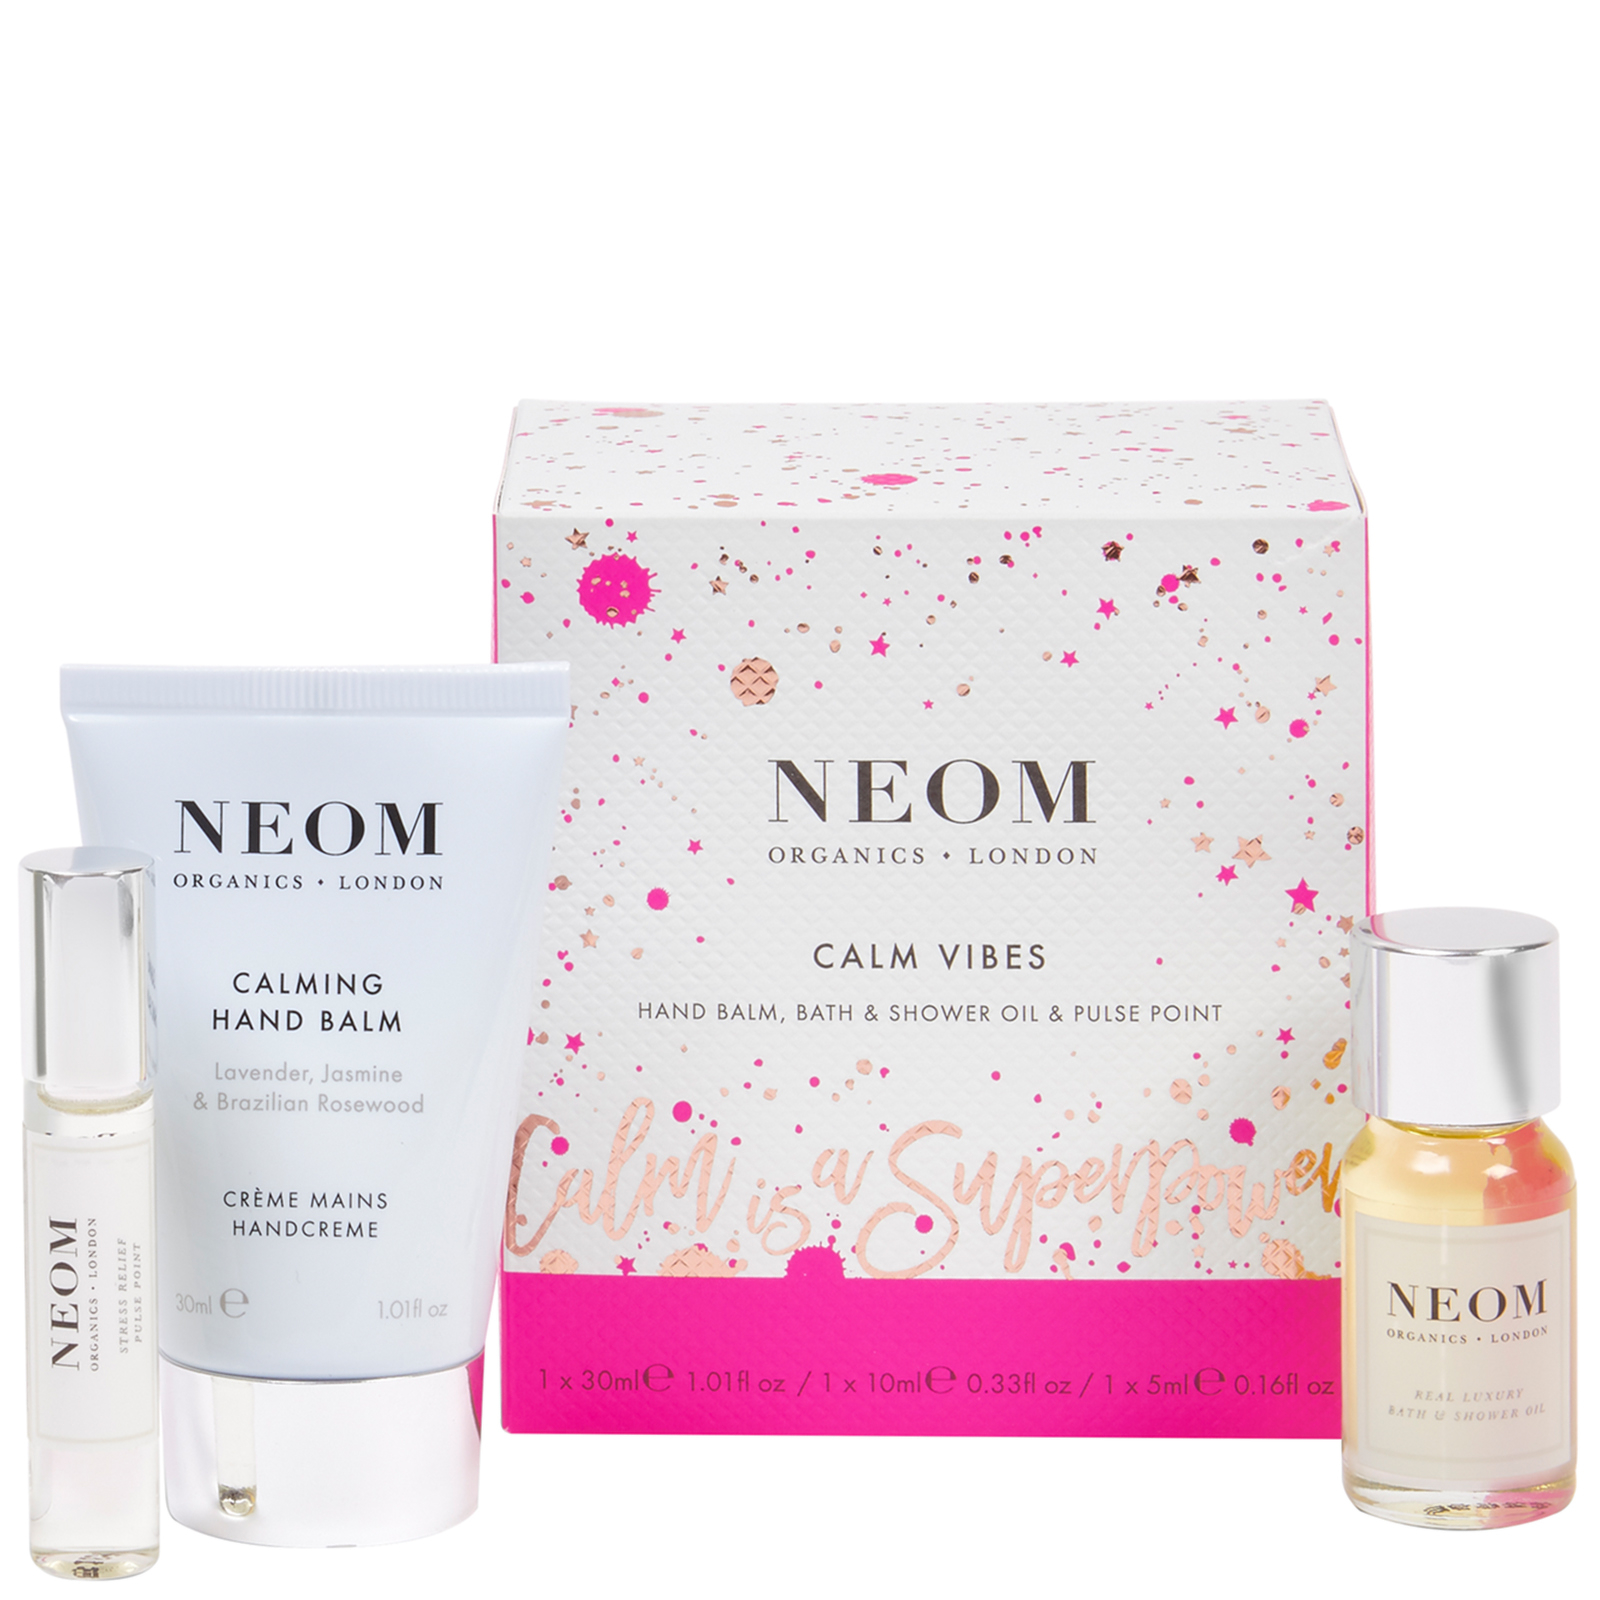 Neom Organics London Christmas 2020 Calm Vibes Gift Set